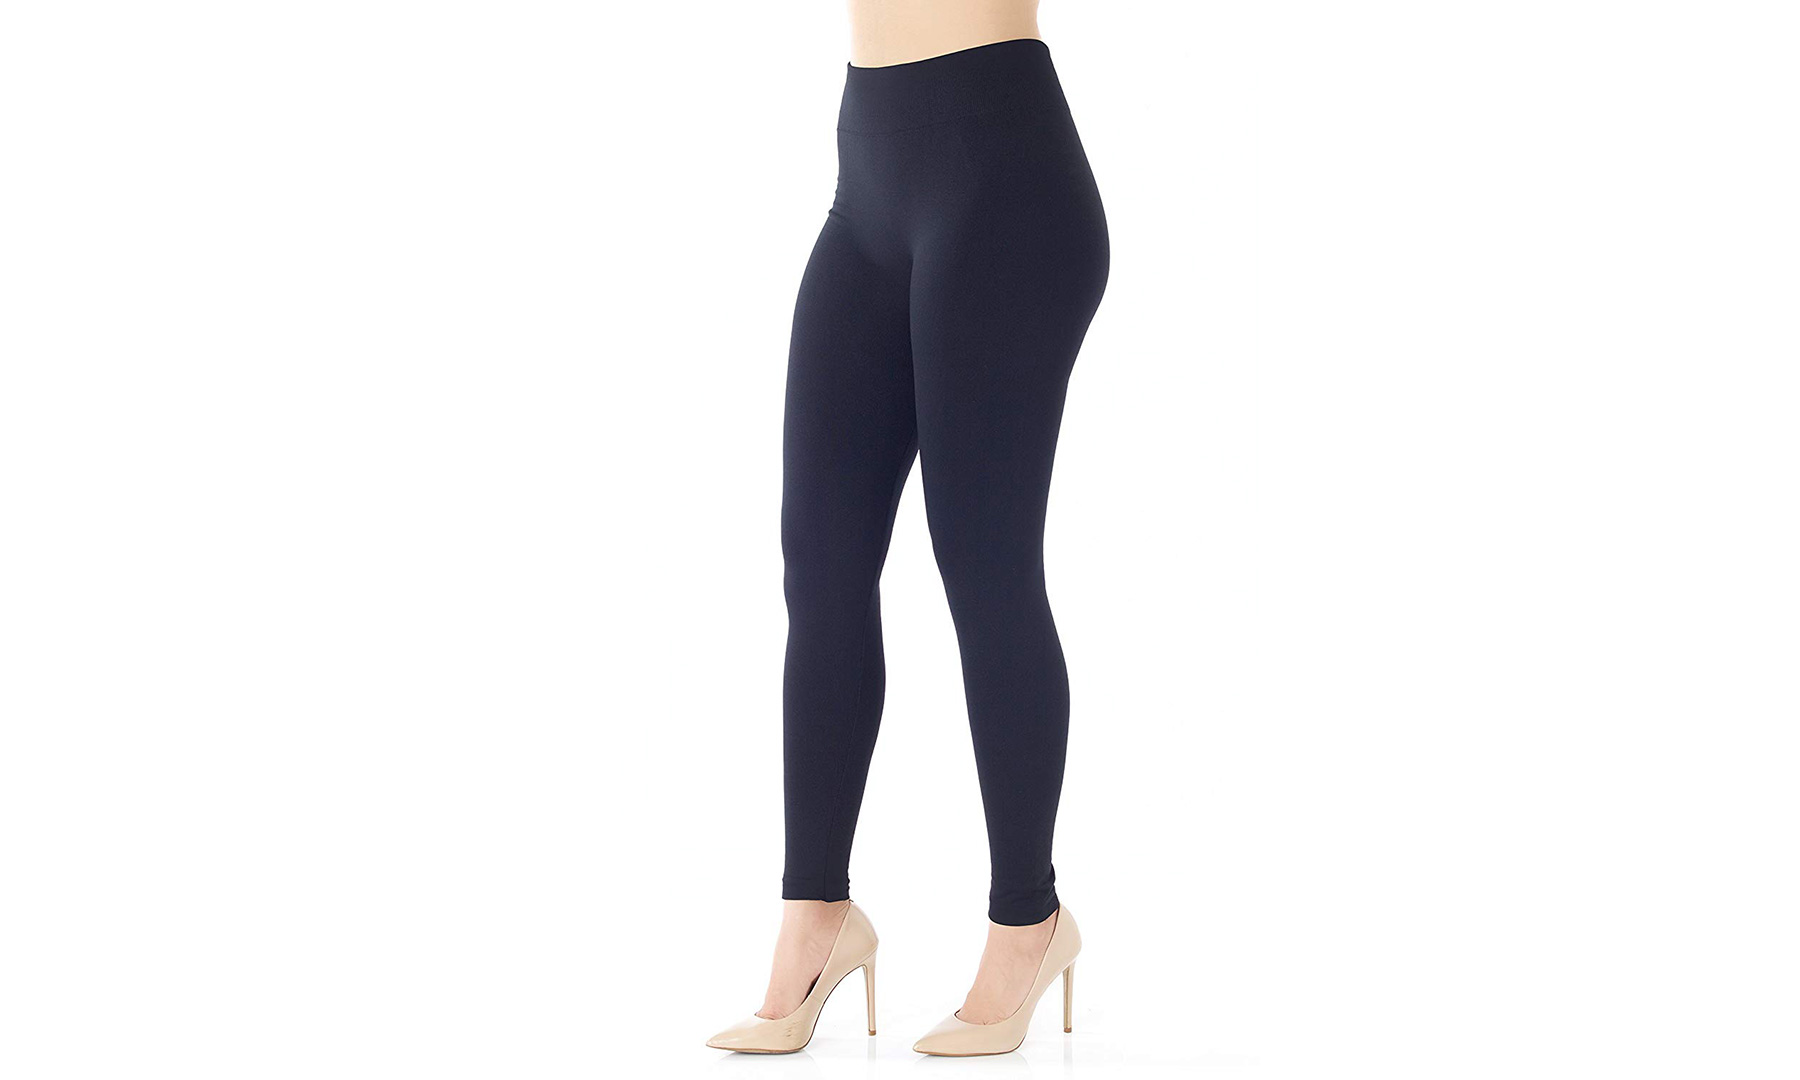 Conceited High Waist Fleece Lined Leggings